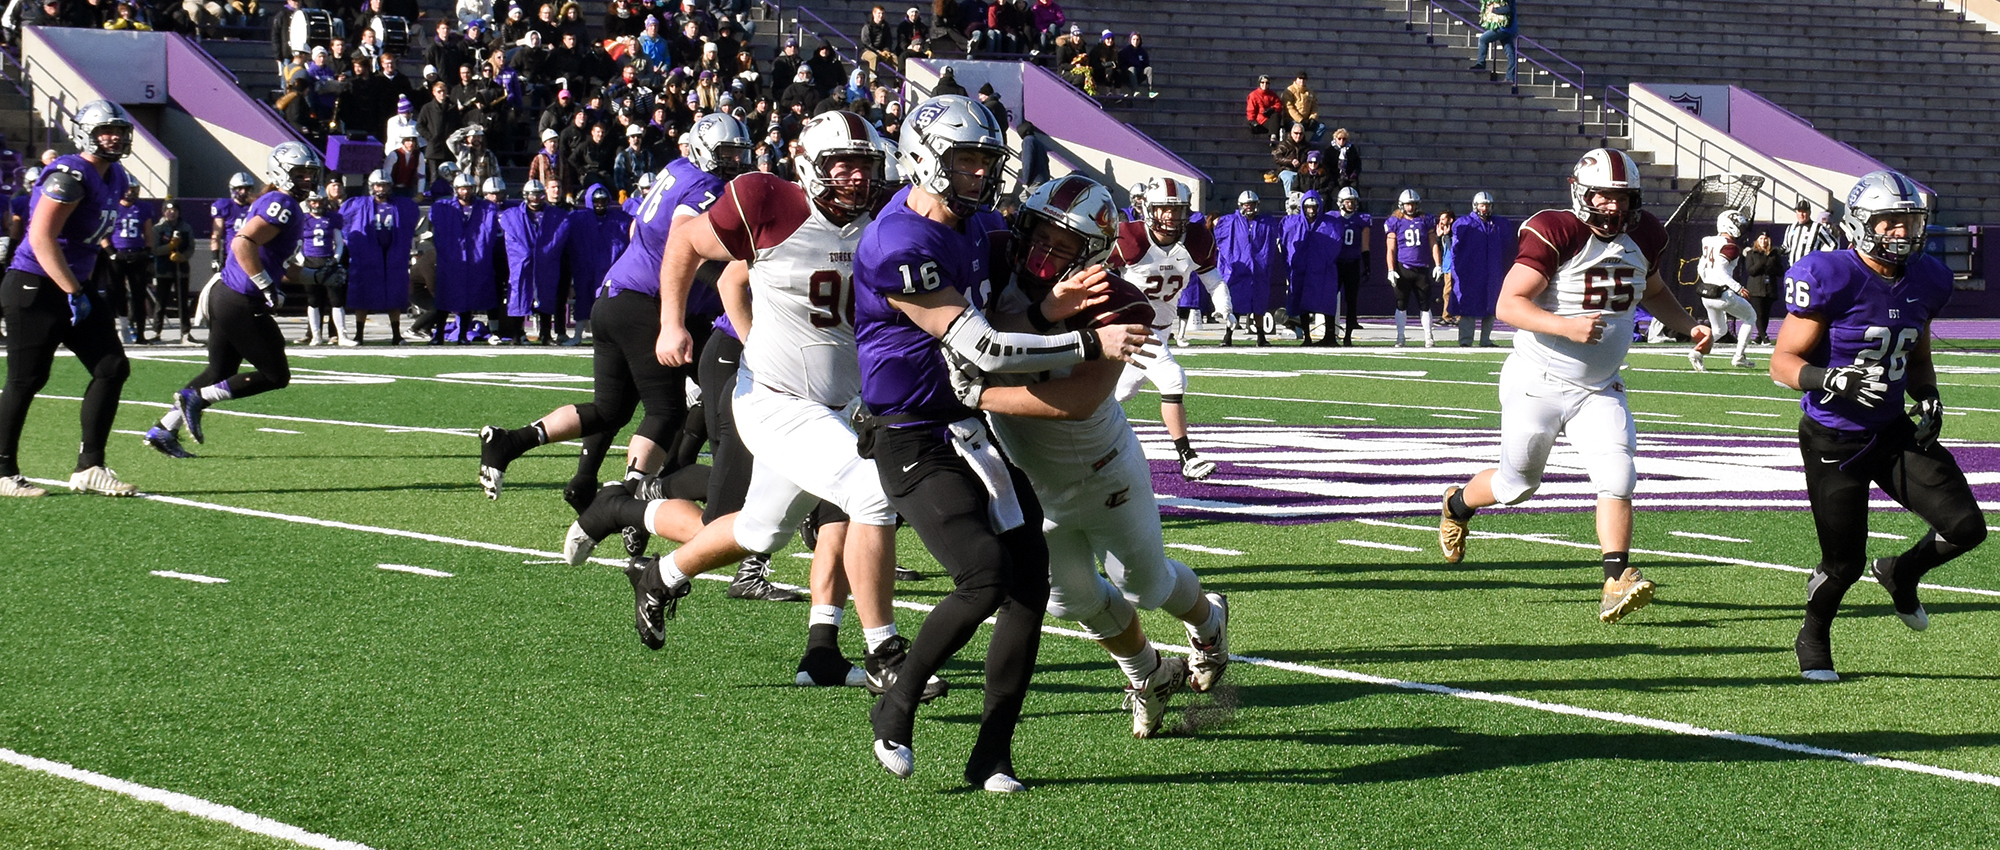 St. Thomas Ousts Eureka From NCAA Playoffs, 47-8